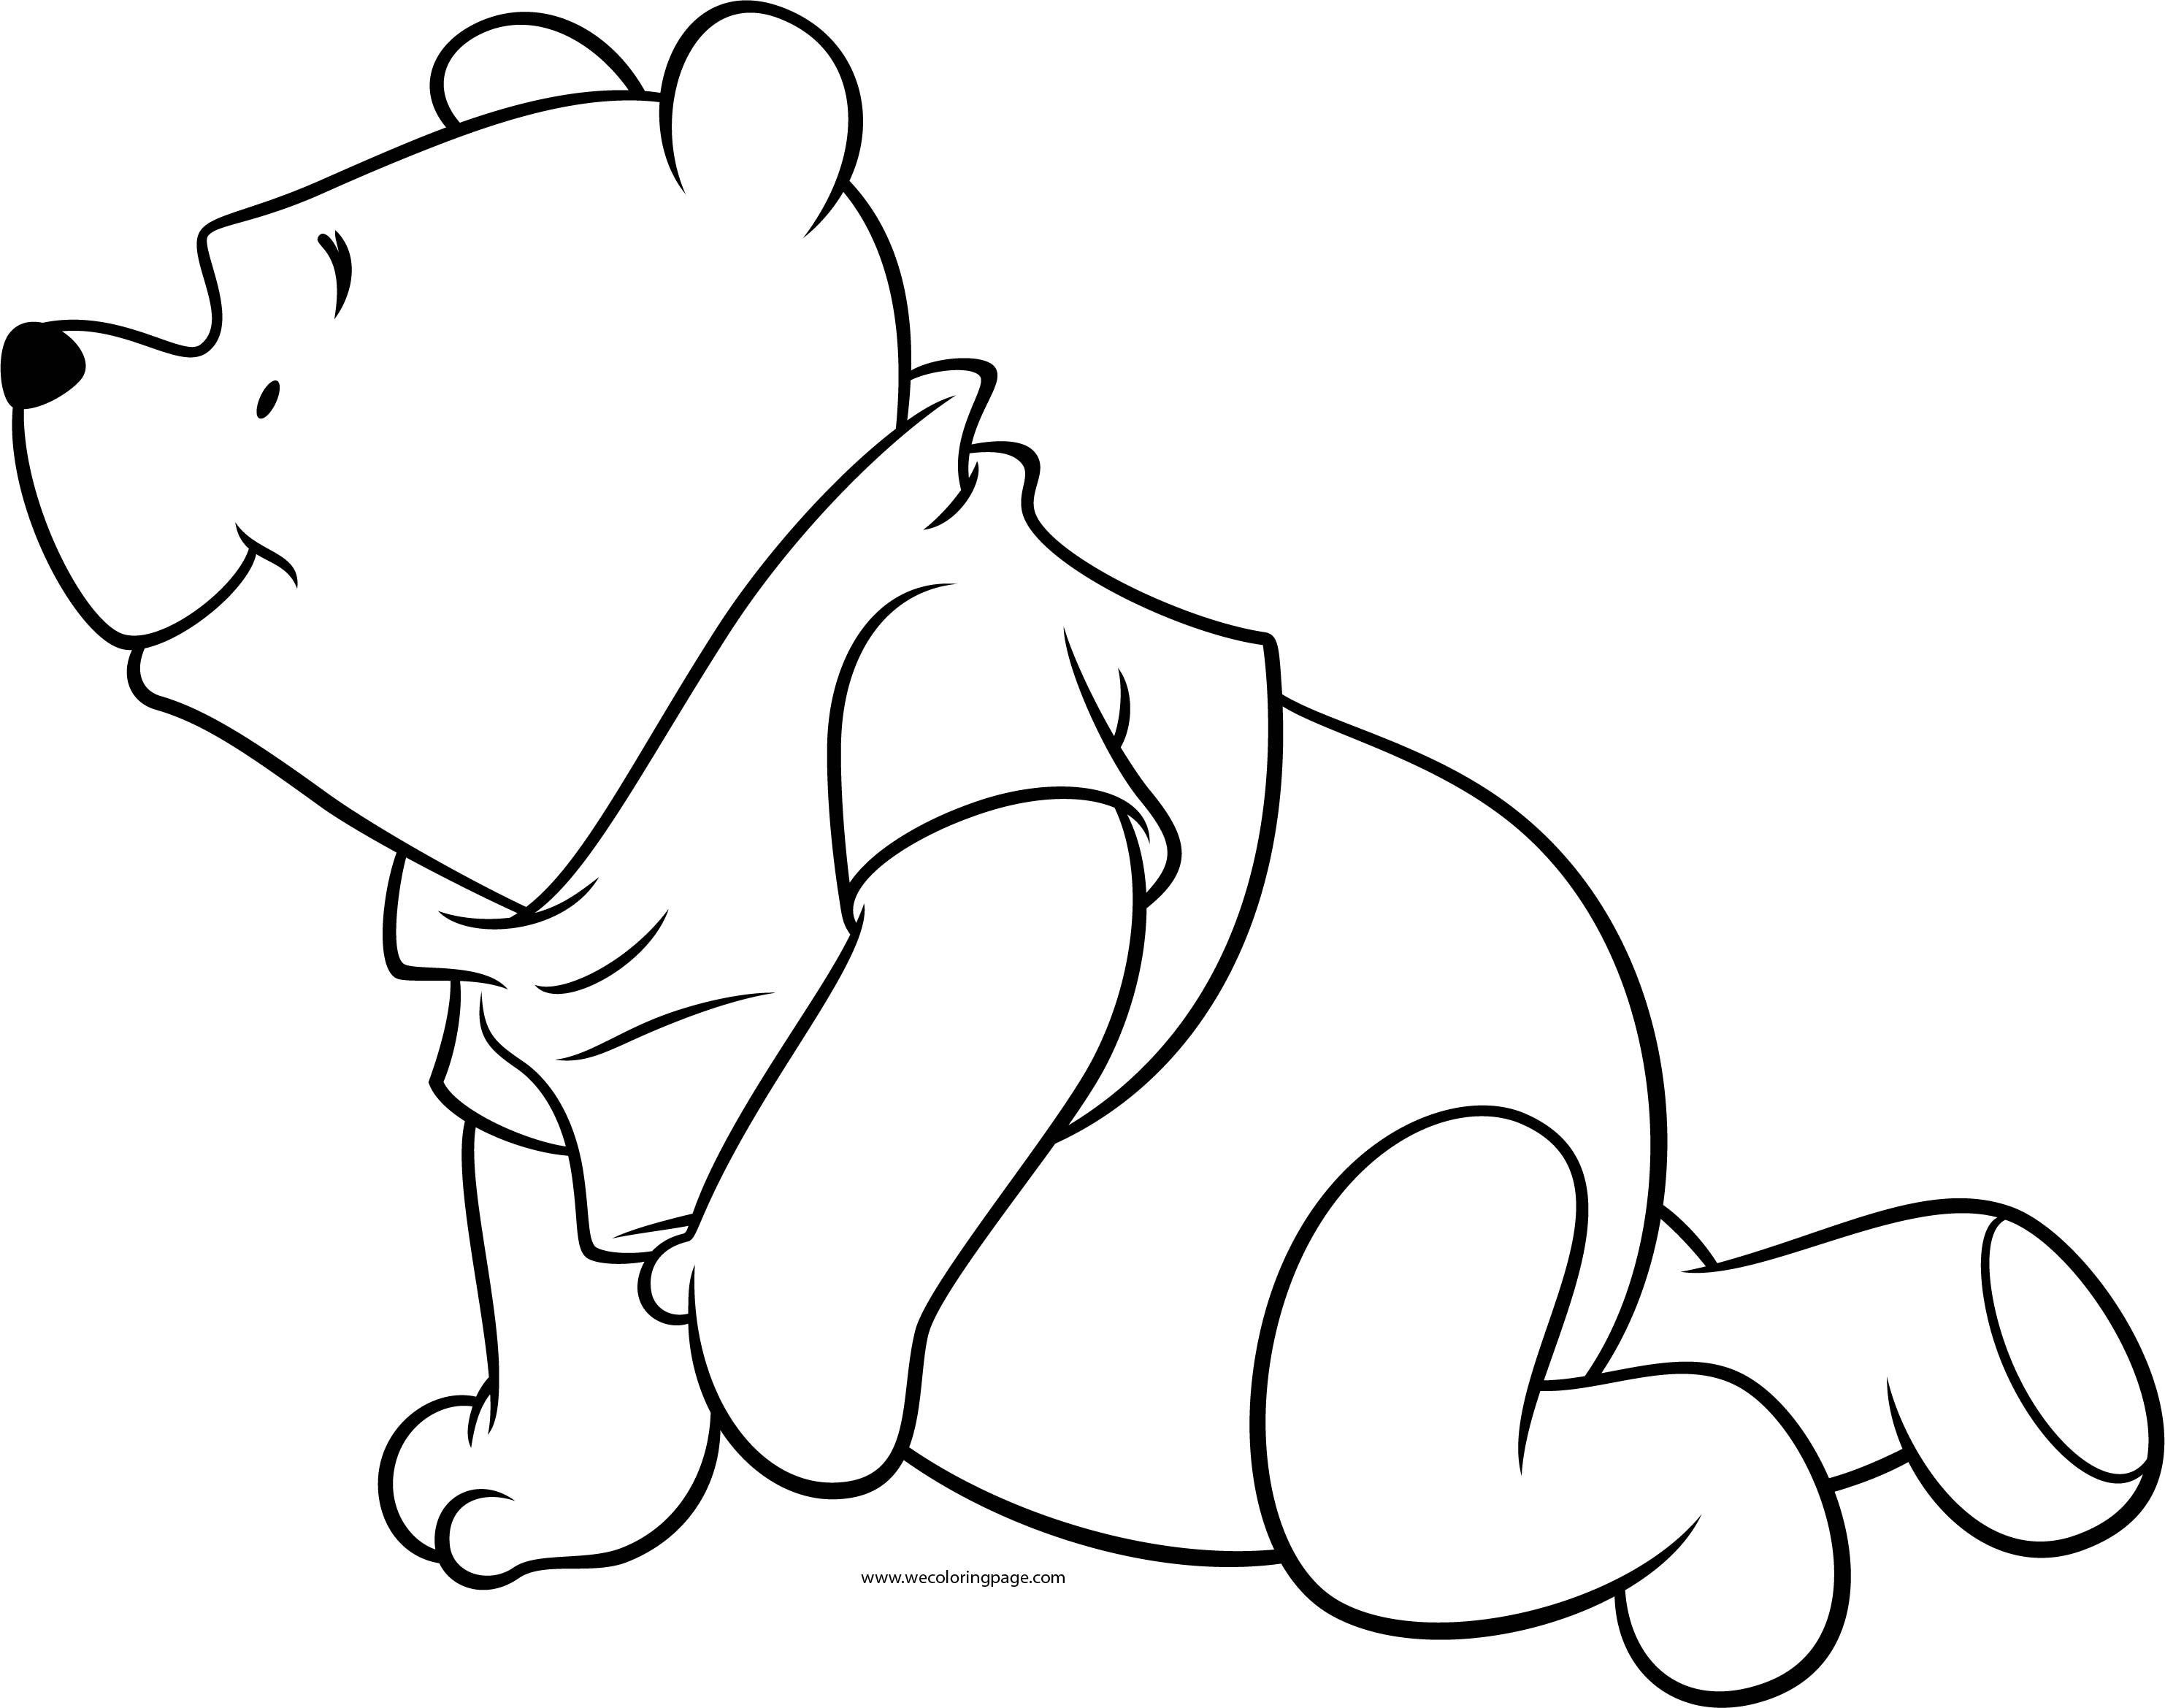 Winnie The Pooh Crawling Coloring Page